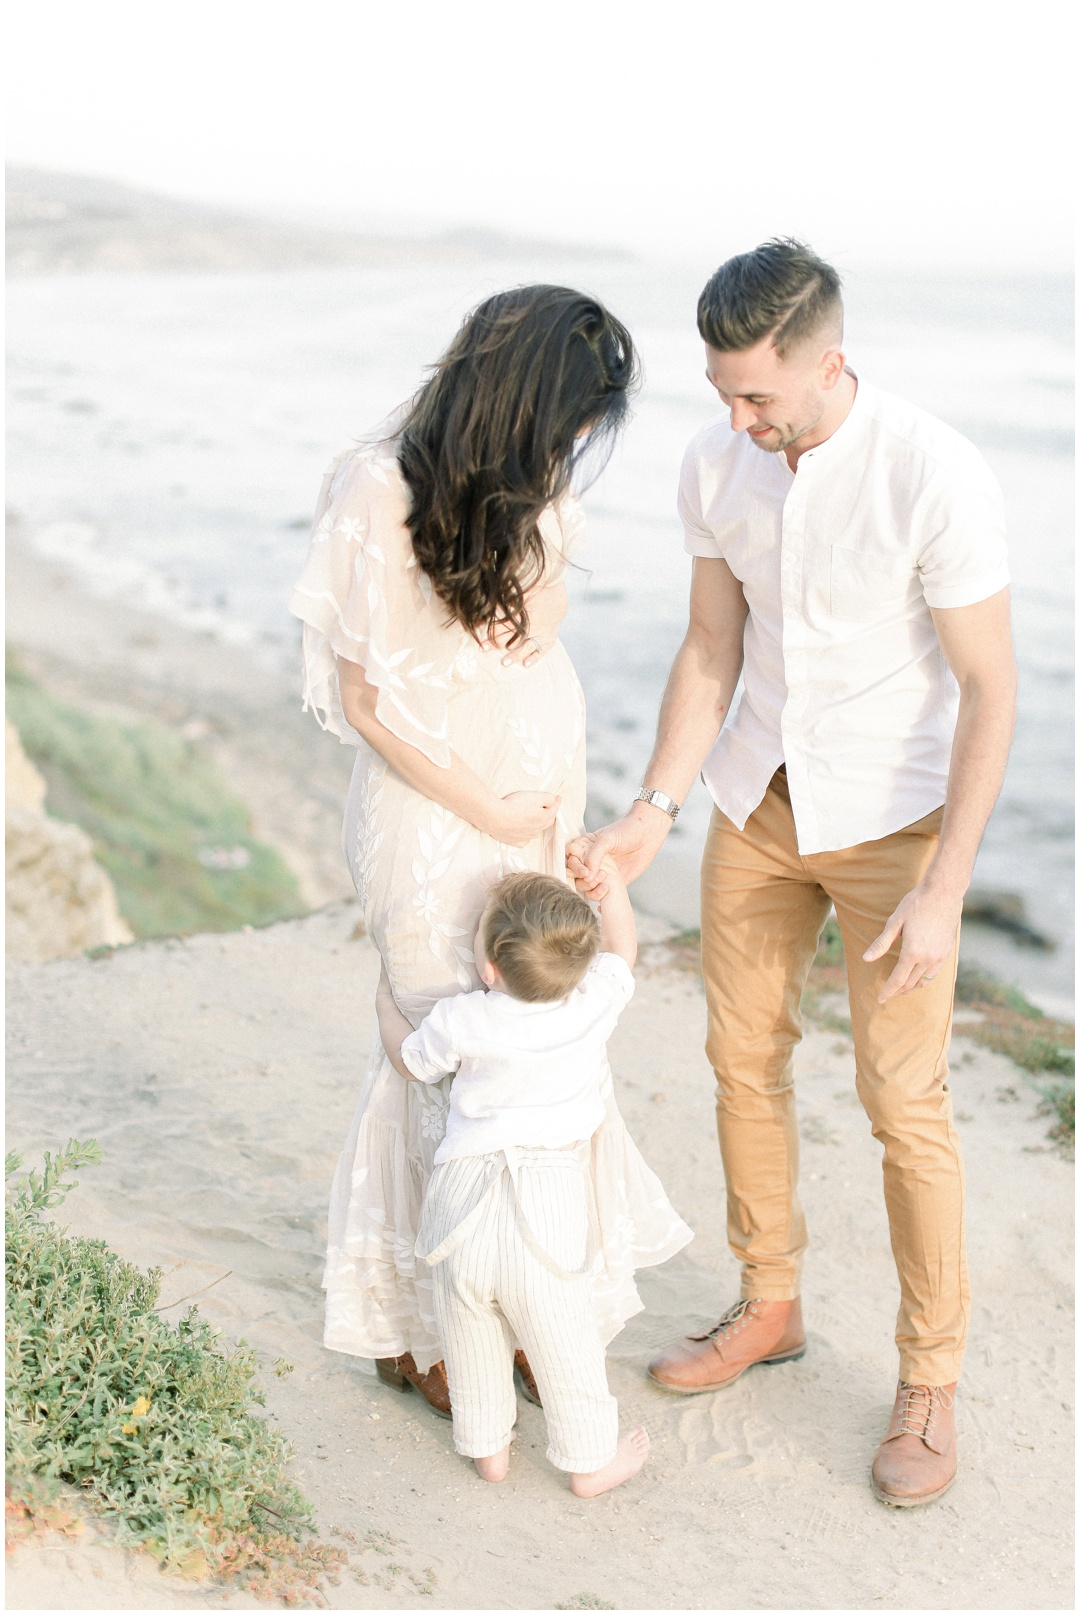 Newport_Beach_Newborn_Light_Airy_Natural_Photographer_Newport_Beach_Photographer_Orange_County_Family_Photographer_Cori_Kleckner_Photography_Huntington_Beach_Photographer_Family_OC_Newborn_Danielle_Lawley_Parker_Maternity_Family_Jordan_Lawley_3348.jpg